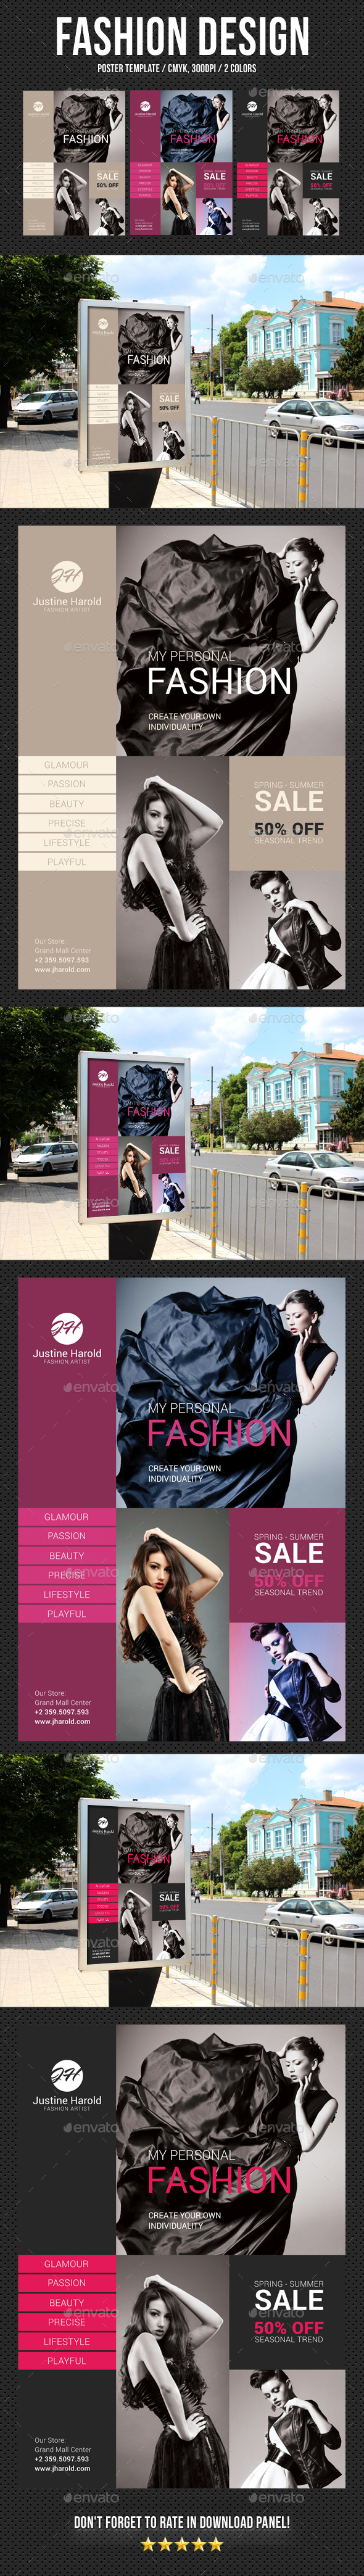 Fashion Poster 06 - Signage Print Templates